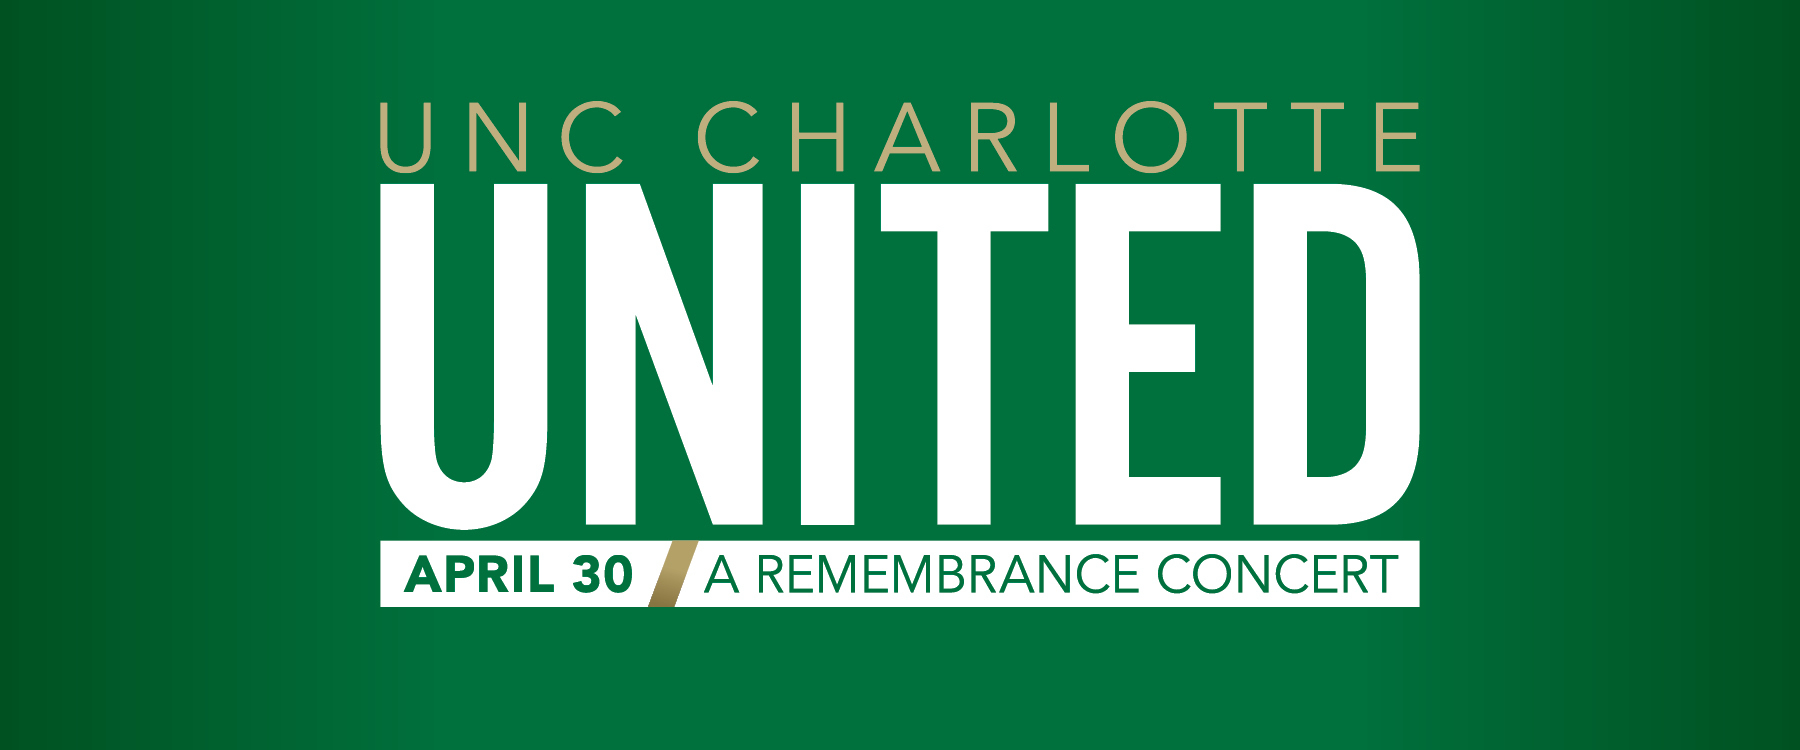 UNC Charlotte to host April 30 Remembrance Concert at Blumenthal